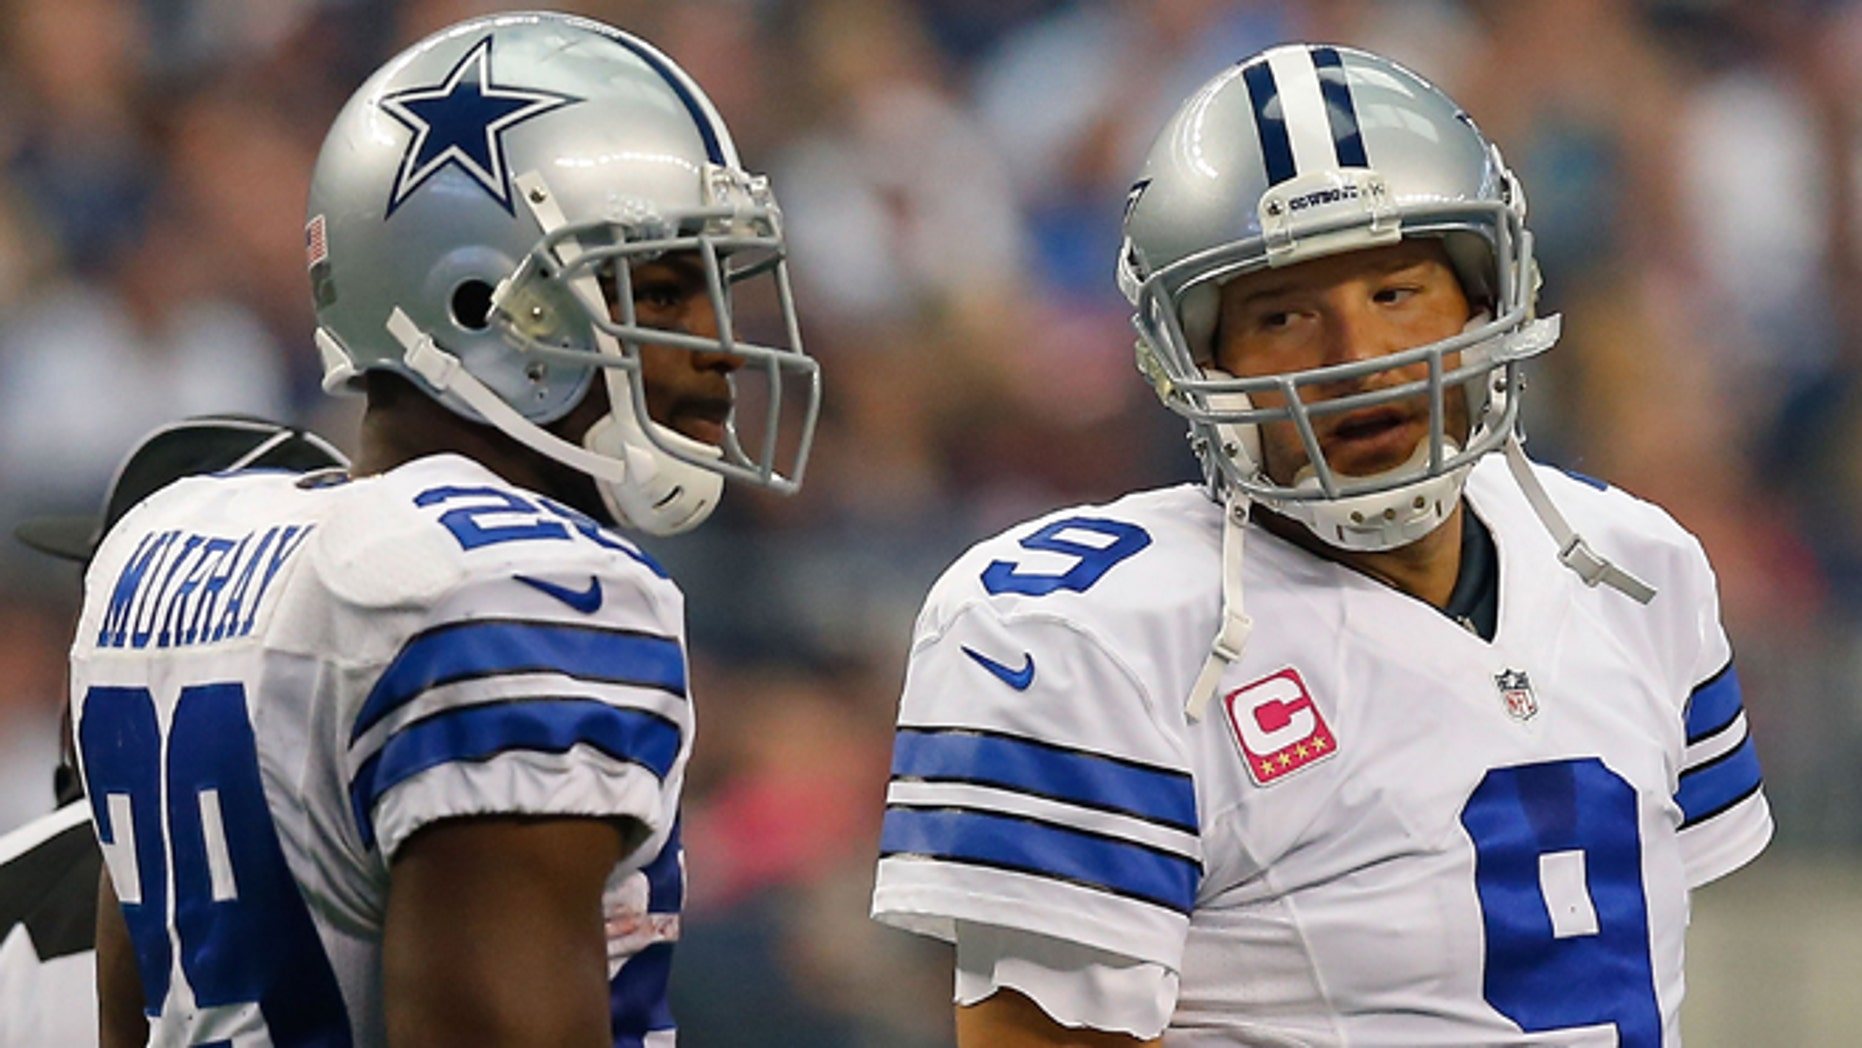 ARLINGTON, TX - OCTOBER 05:  Tony Romo #9 of the Dallas Cowboys talks to DeMarco Murray #29 of the Dallas Cowboys against the Houston Texans in the first half at AT&T Stadium on October 5, 2014 in Arlington, Texas.  (Photo by Tom Pennington/Getty Images)